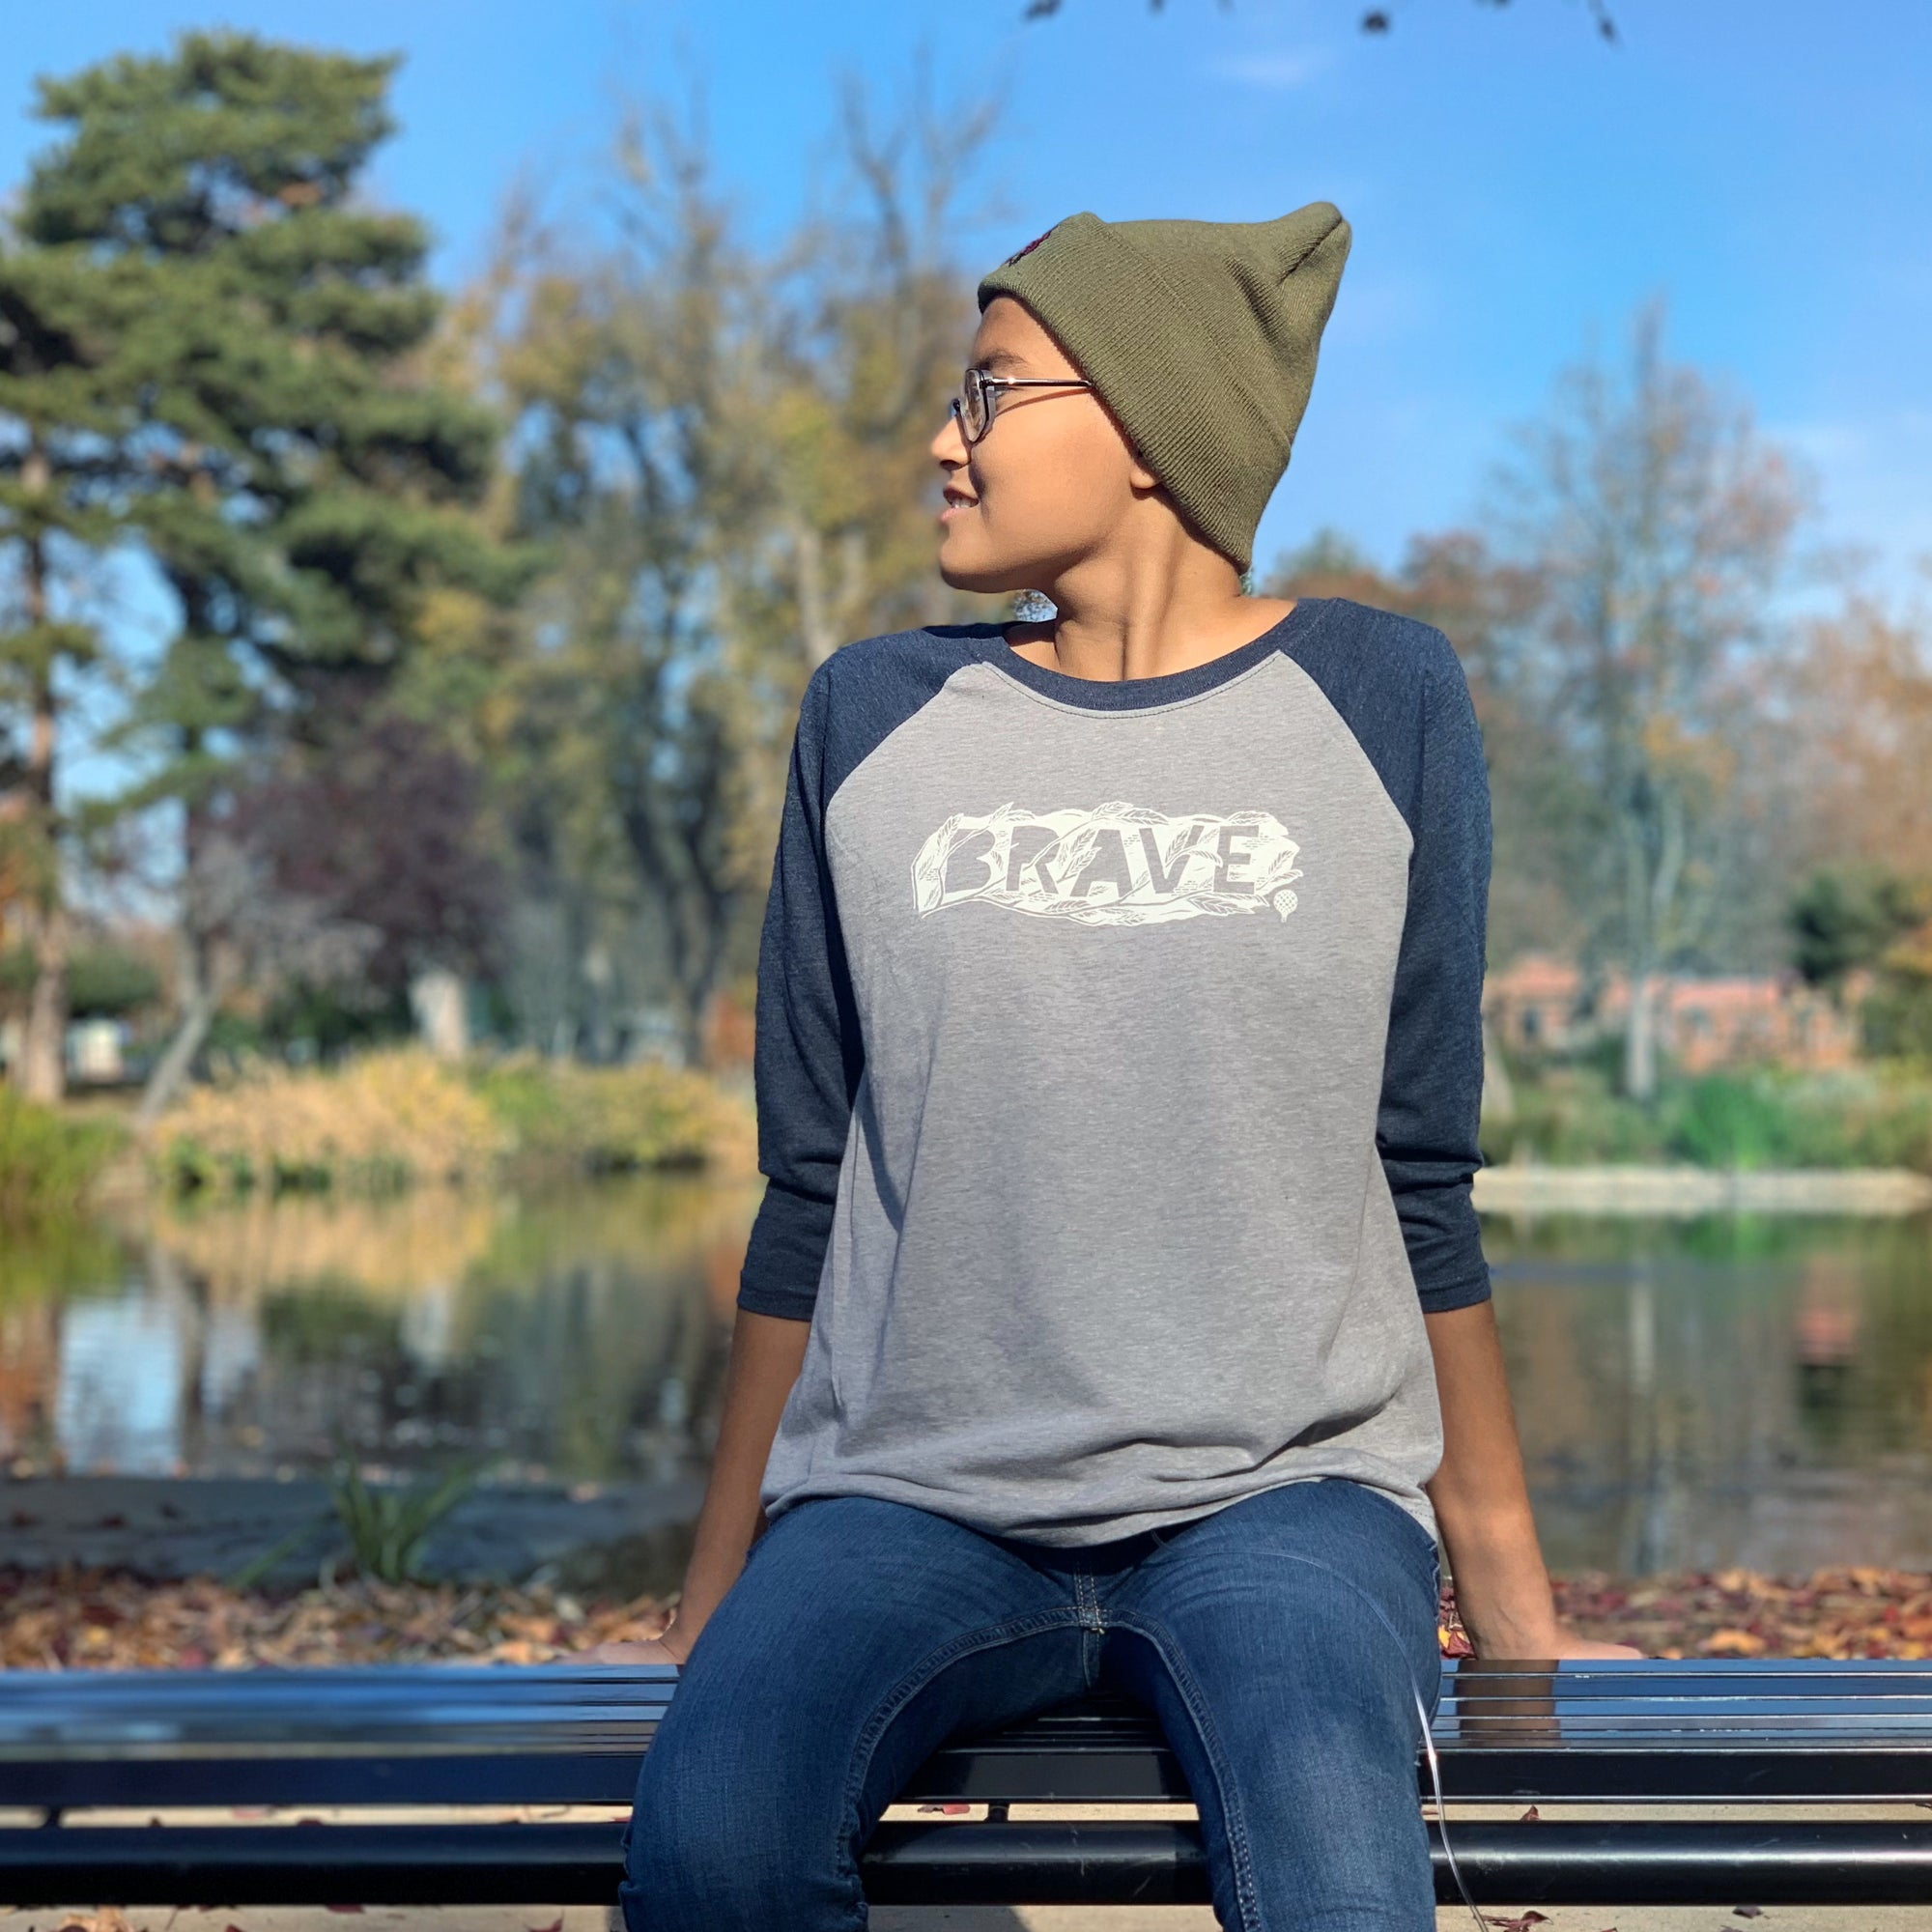 BRAVE | kids unisex 3/4 sleeves baseball tee | gray/navy